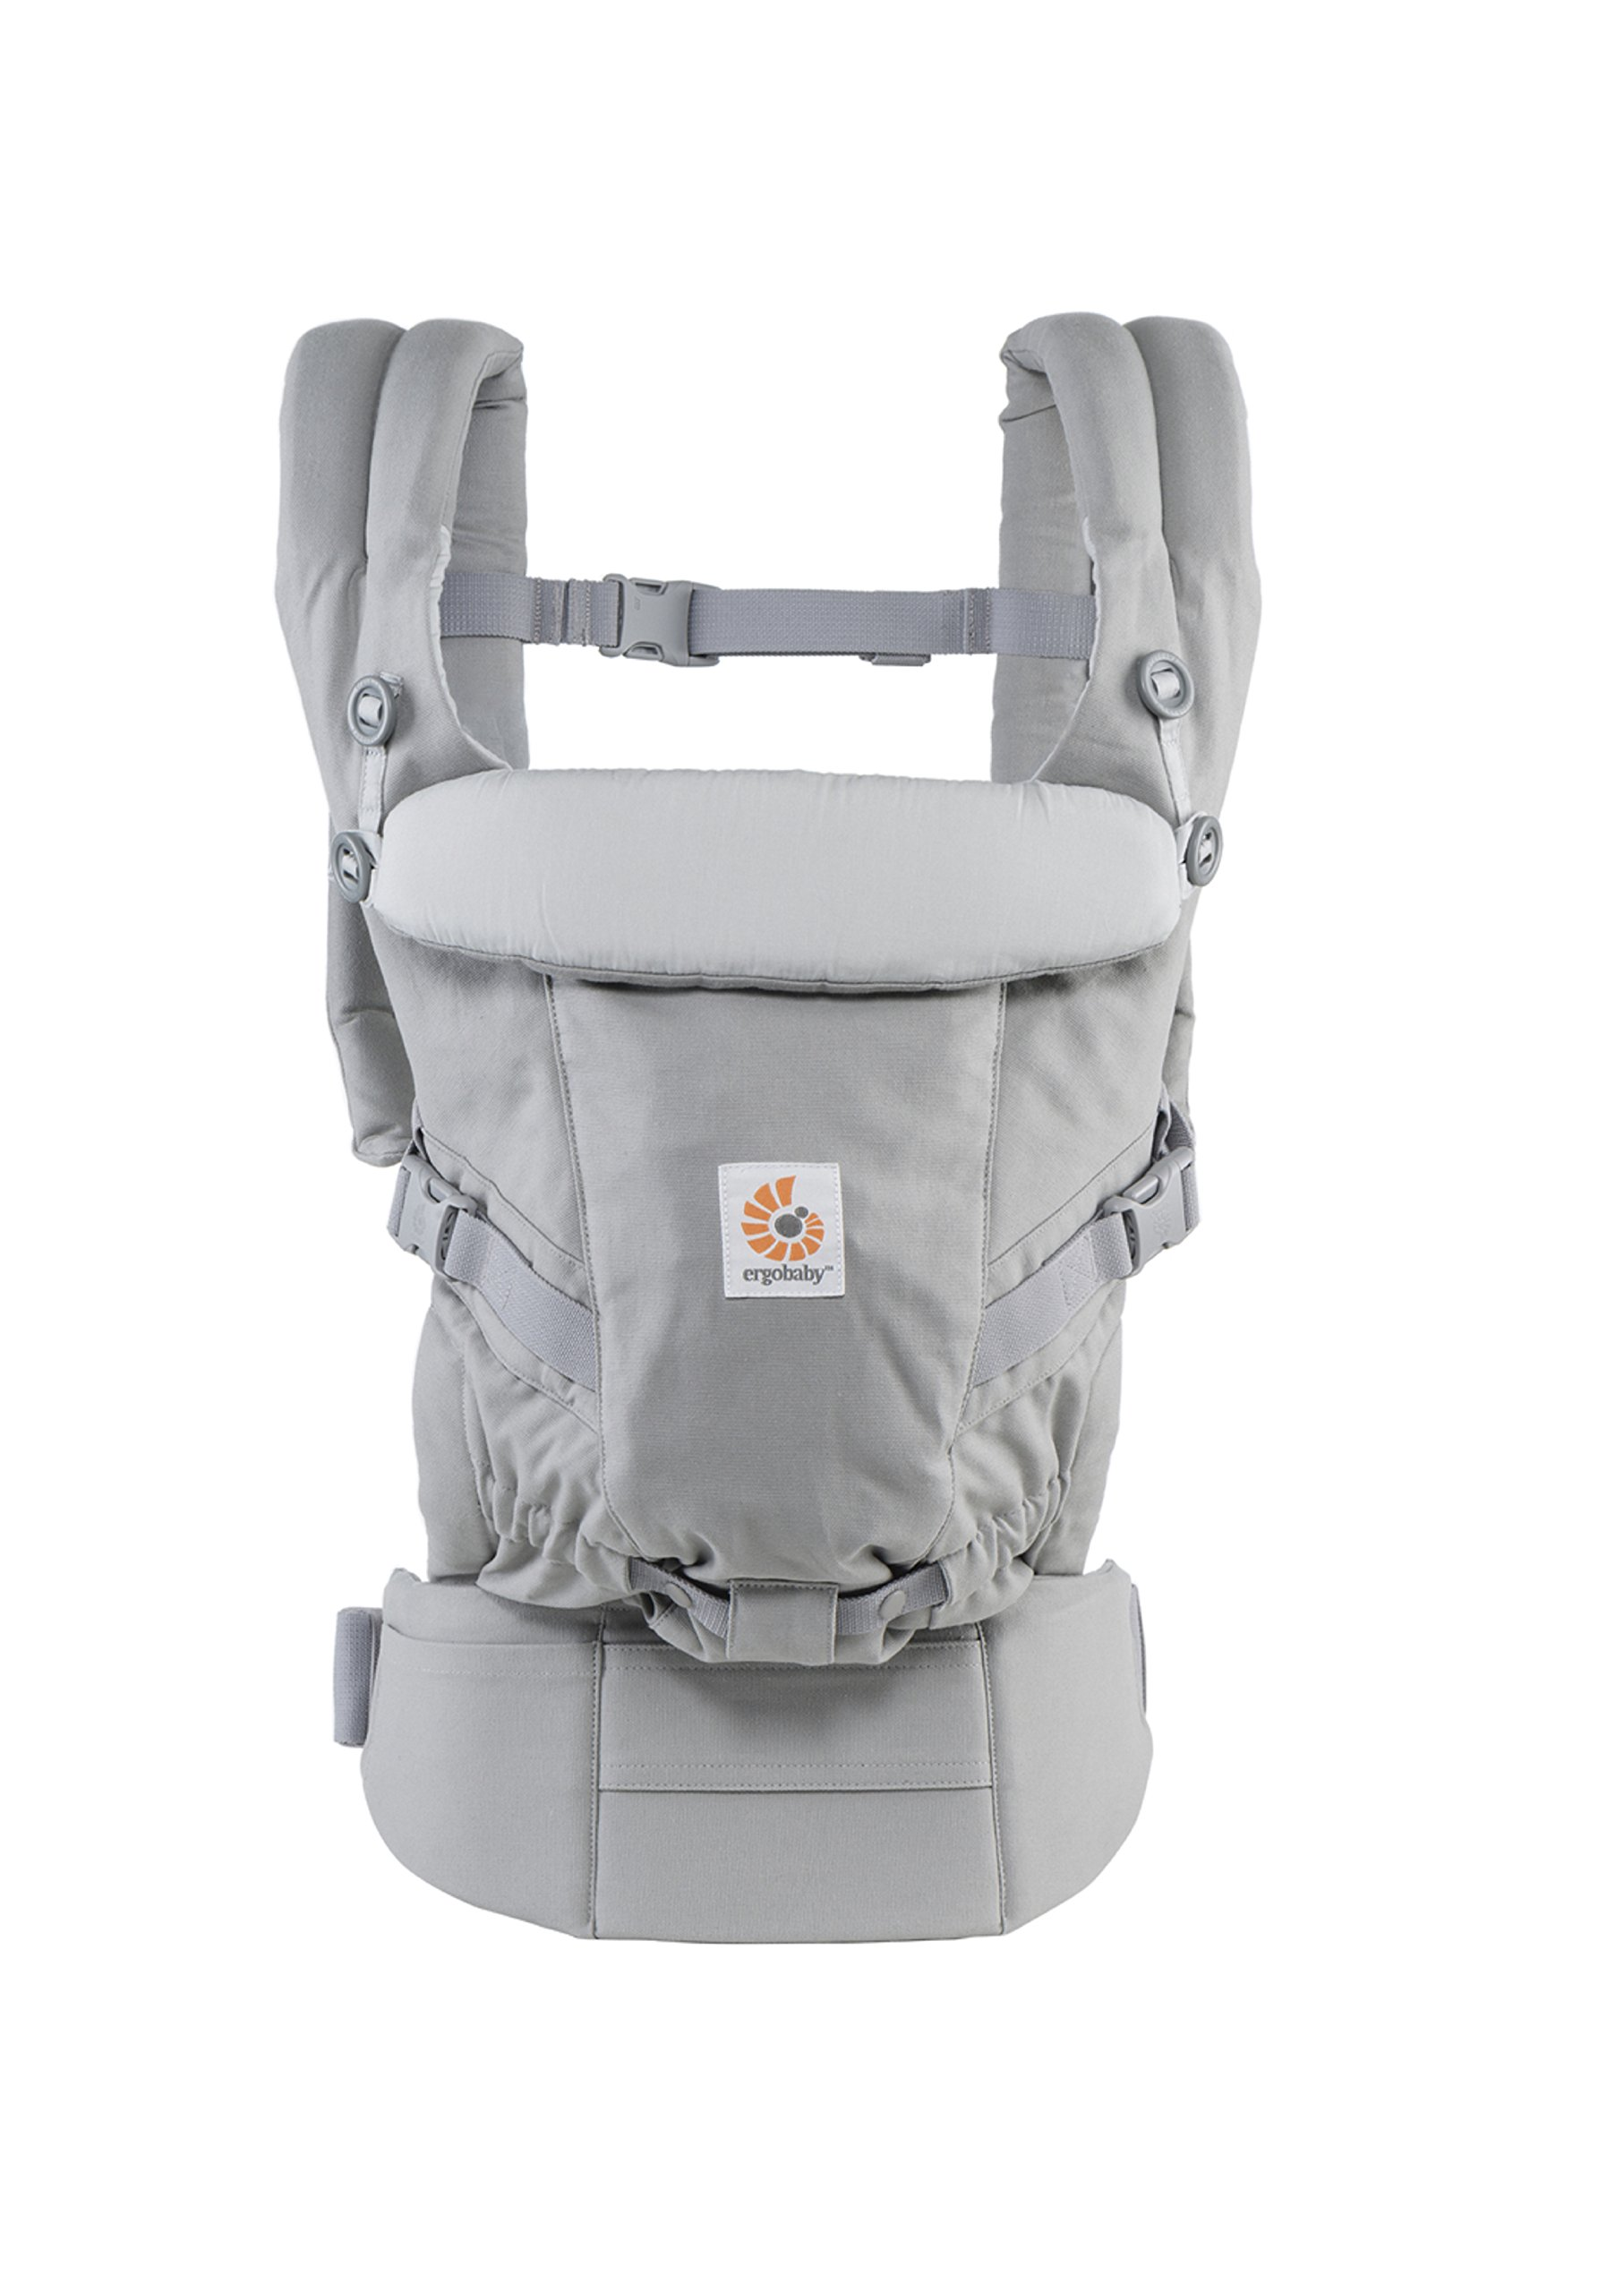 ErgoBaby Adapt Baby Carrier Grey Ergobaby Adapt to Every Baby Easy. Adjustable. Newborn to toddler. 1